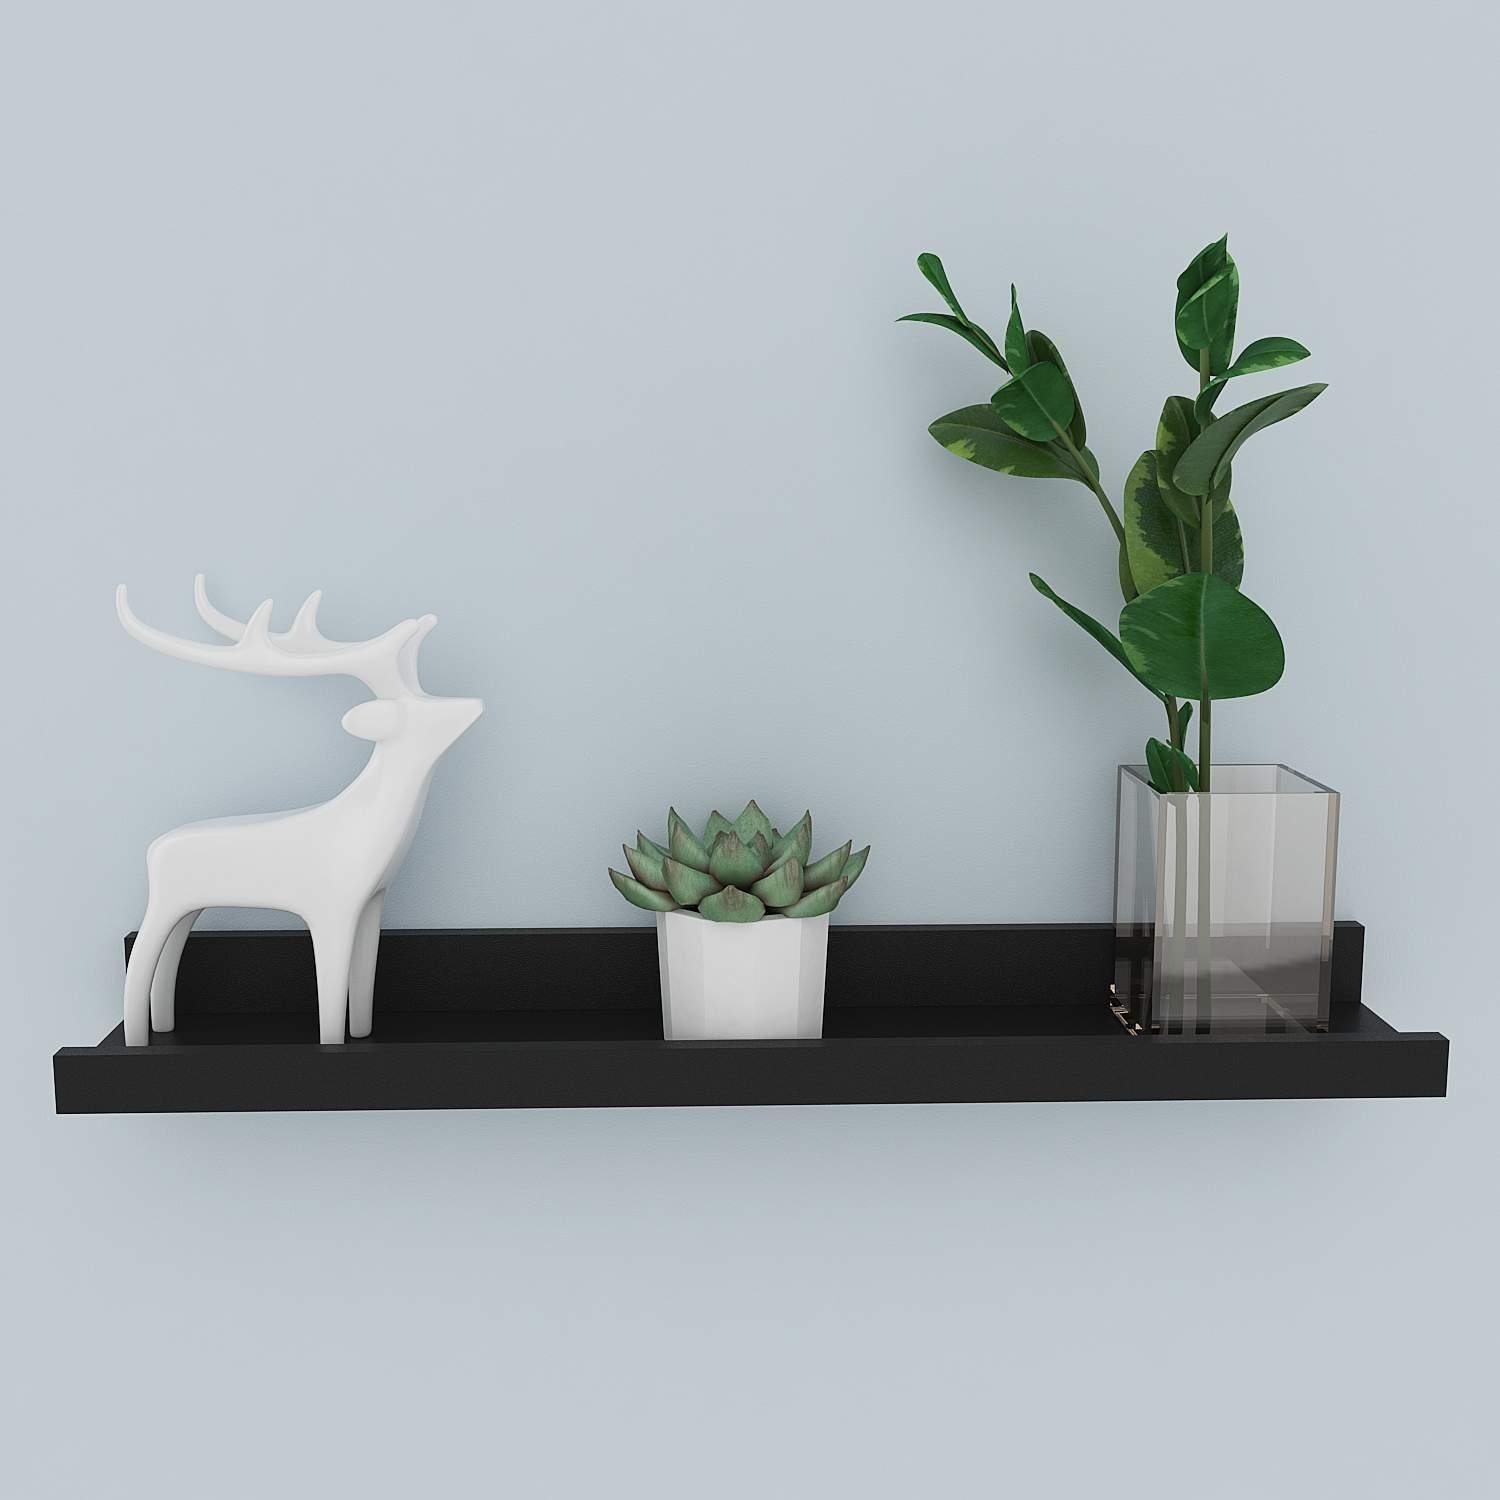 Hindom Modern Floating Shelf Picture Display Nursery Ledge Wall Mounted Floating Ledge Shelf for Photo Picture Frames Book, Floating Wall Photo Ledge Shelves, Black (US STOCK)